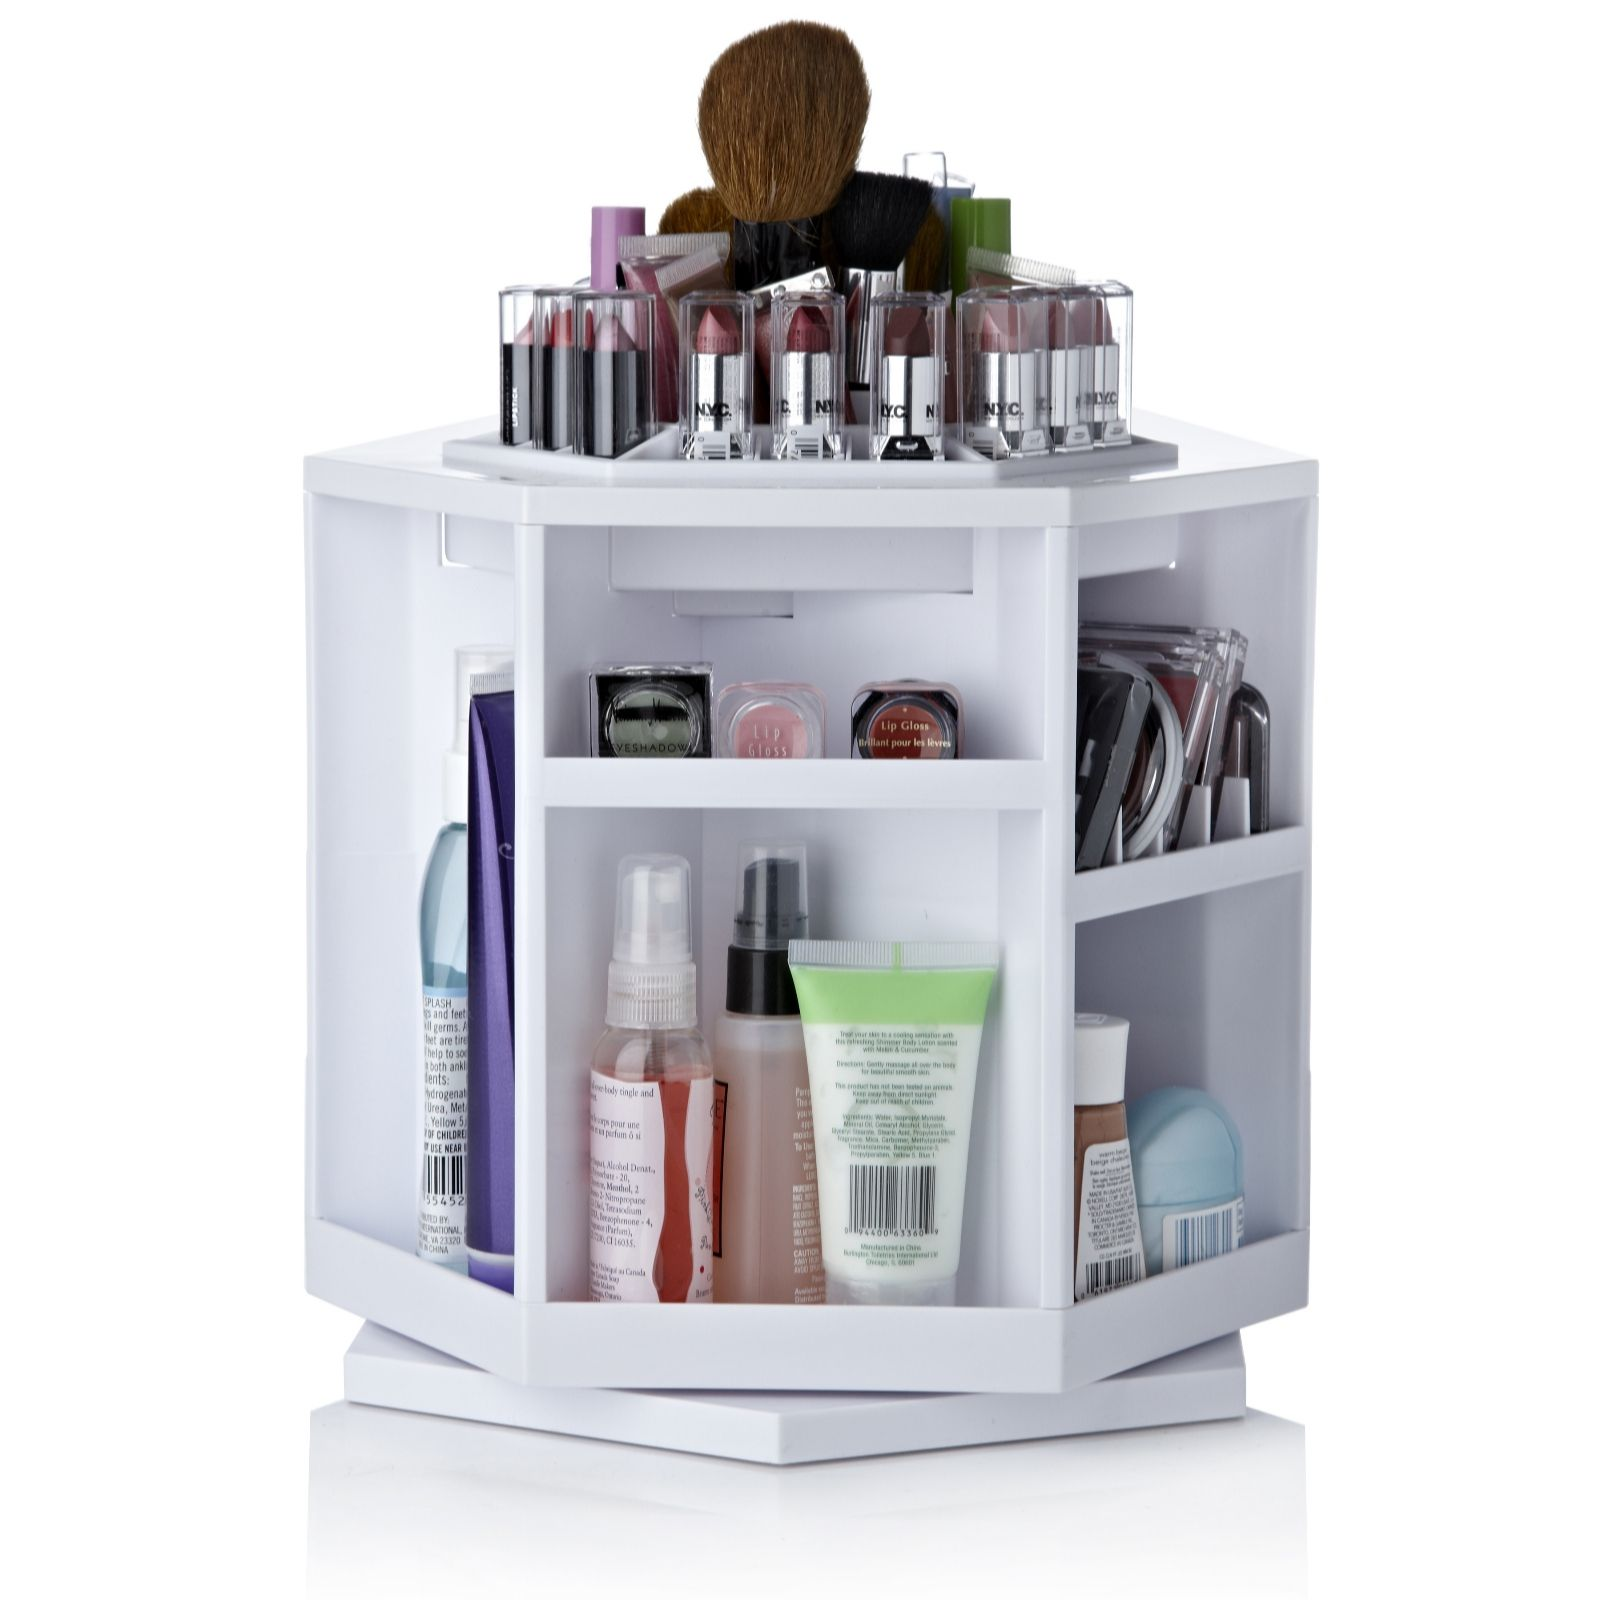 5 super handy makeup storage ideas shinyshiny - Rangement maquillage acrylique pas cher ...